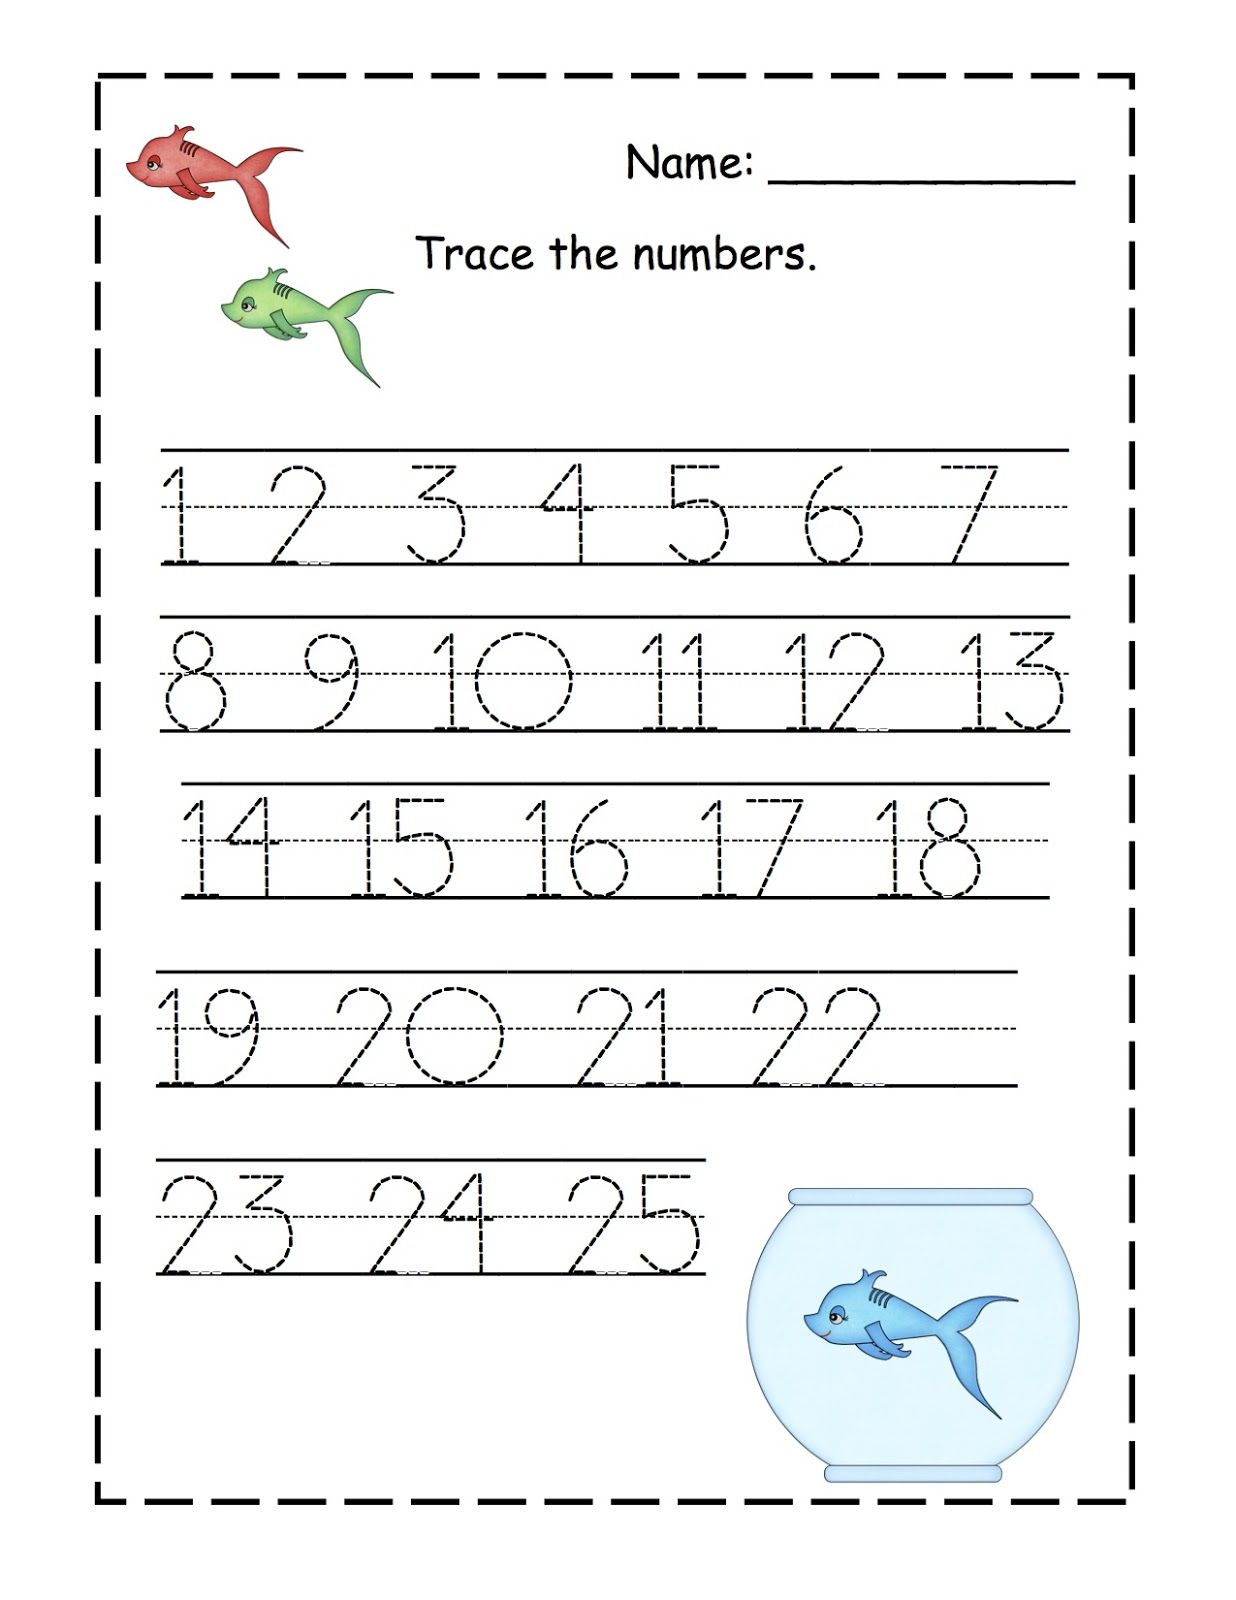 Worksheets Traceable Numbers Worksheets 1 20 collection of free number tracing worksheets 1 20 sharebrowse traceable numbers 10 for kindergarten kids kiddo shelter